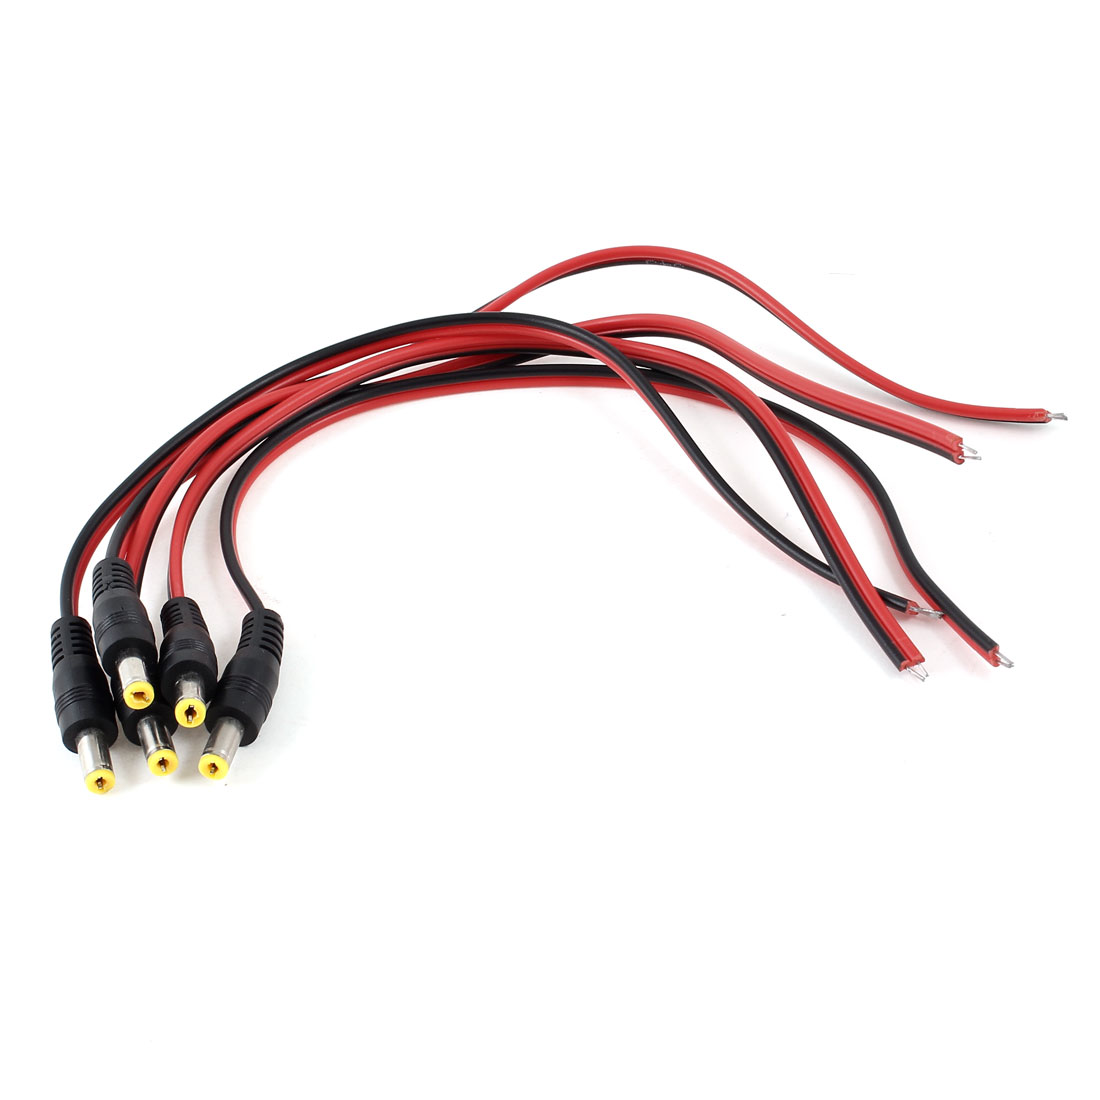 """11.8"""" CCTV Security Camera 5.5x2.1mm DC Male Jack Power Supply Cable 5 Pcs"""